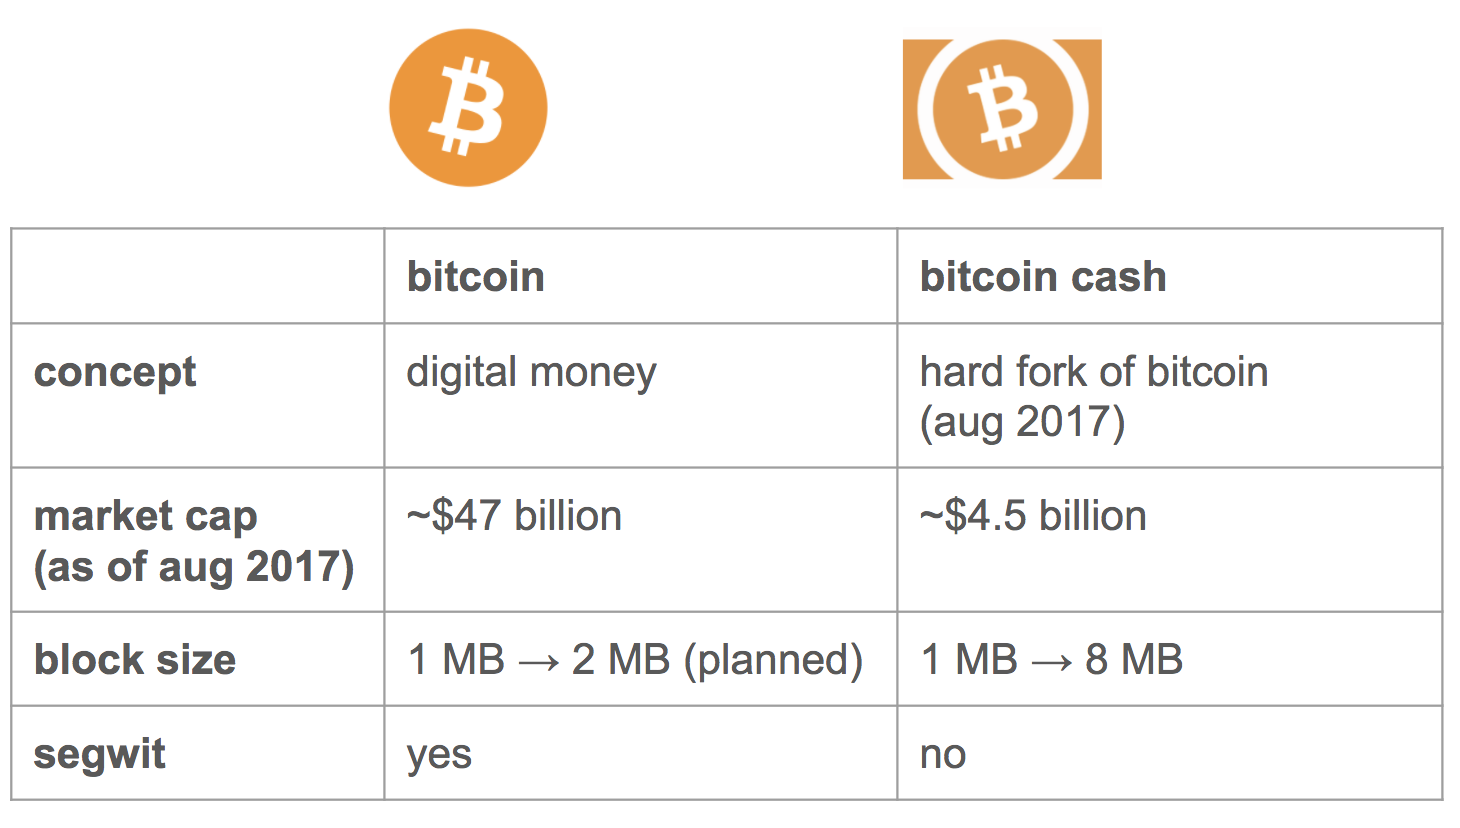 This Post Should Help Those Who Are New To Bitcoin Cash Understand How It Is Diffe Than